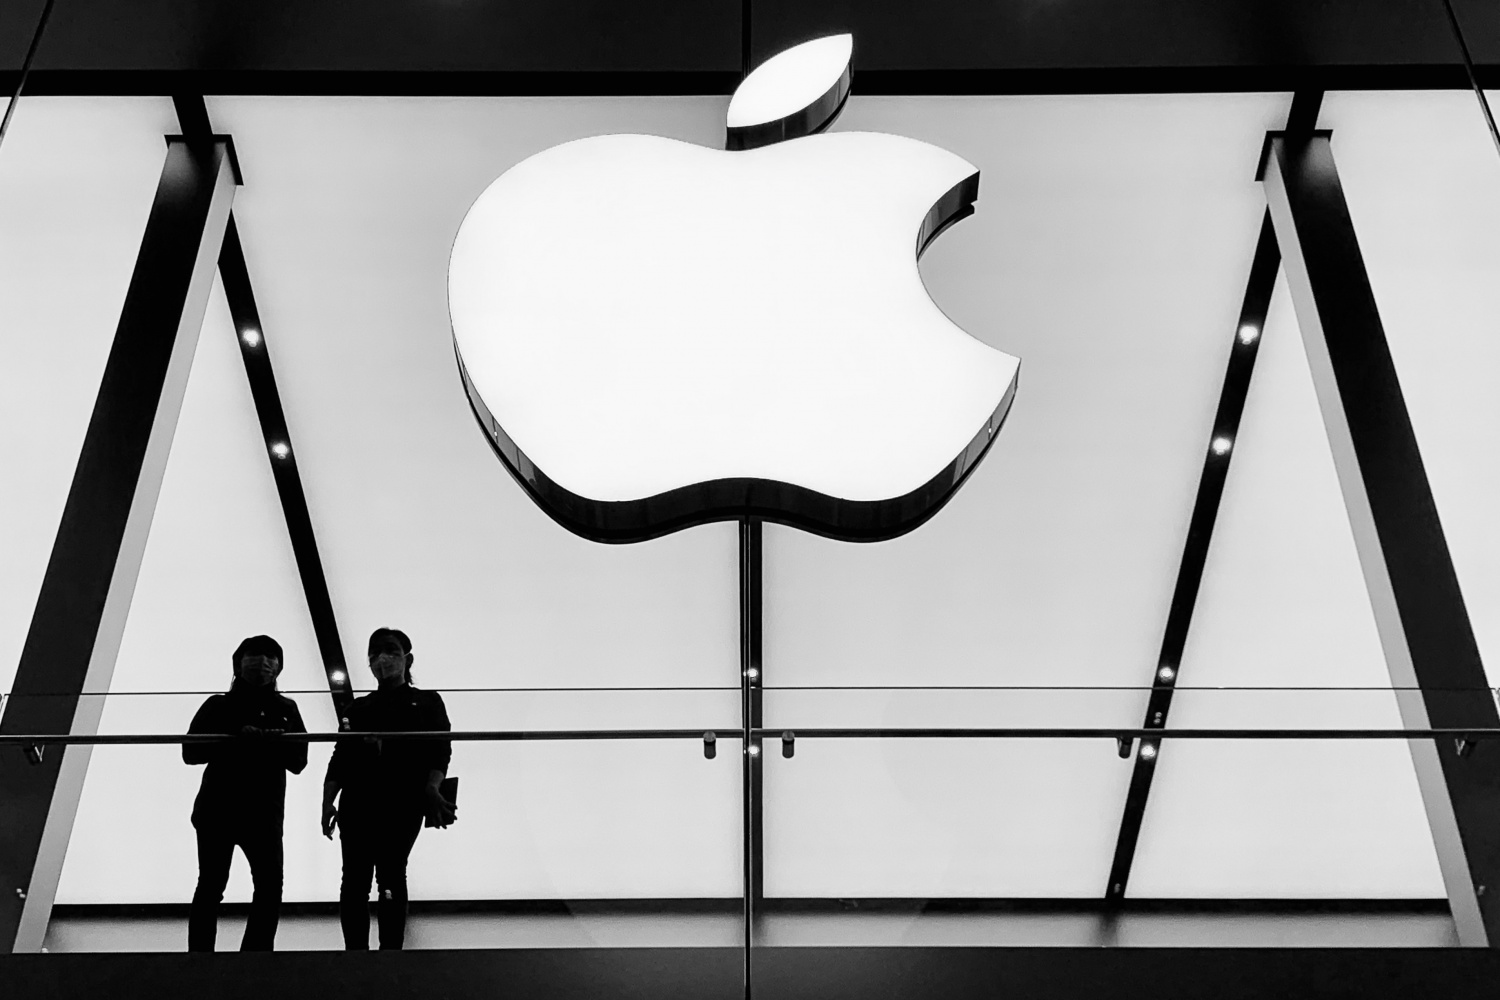 Apple Employees #AppleToo Start Sharing Toxic Workplace Stories Involving Alleged Discrimination, Retaliation, and More